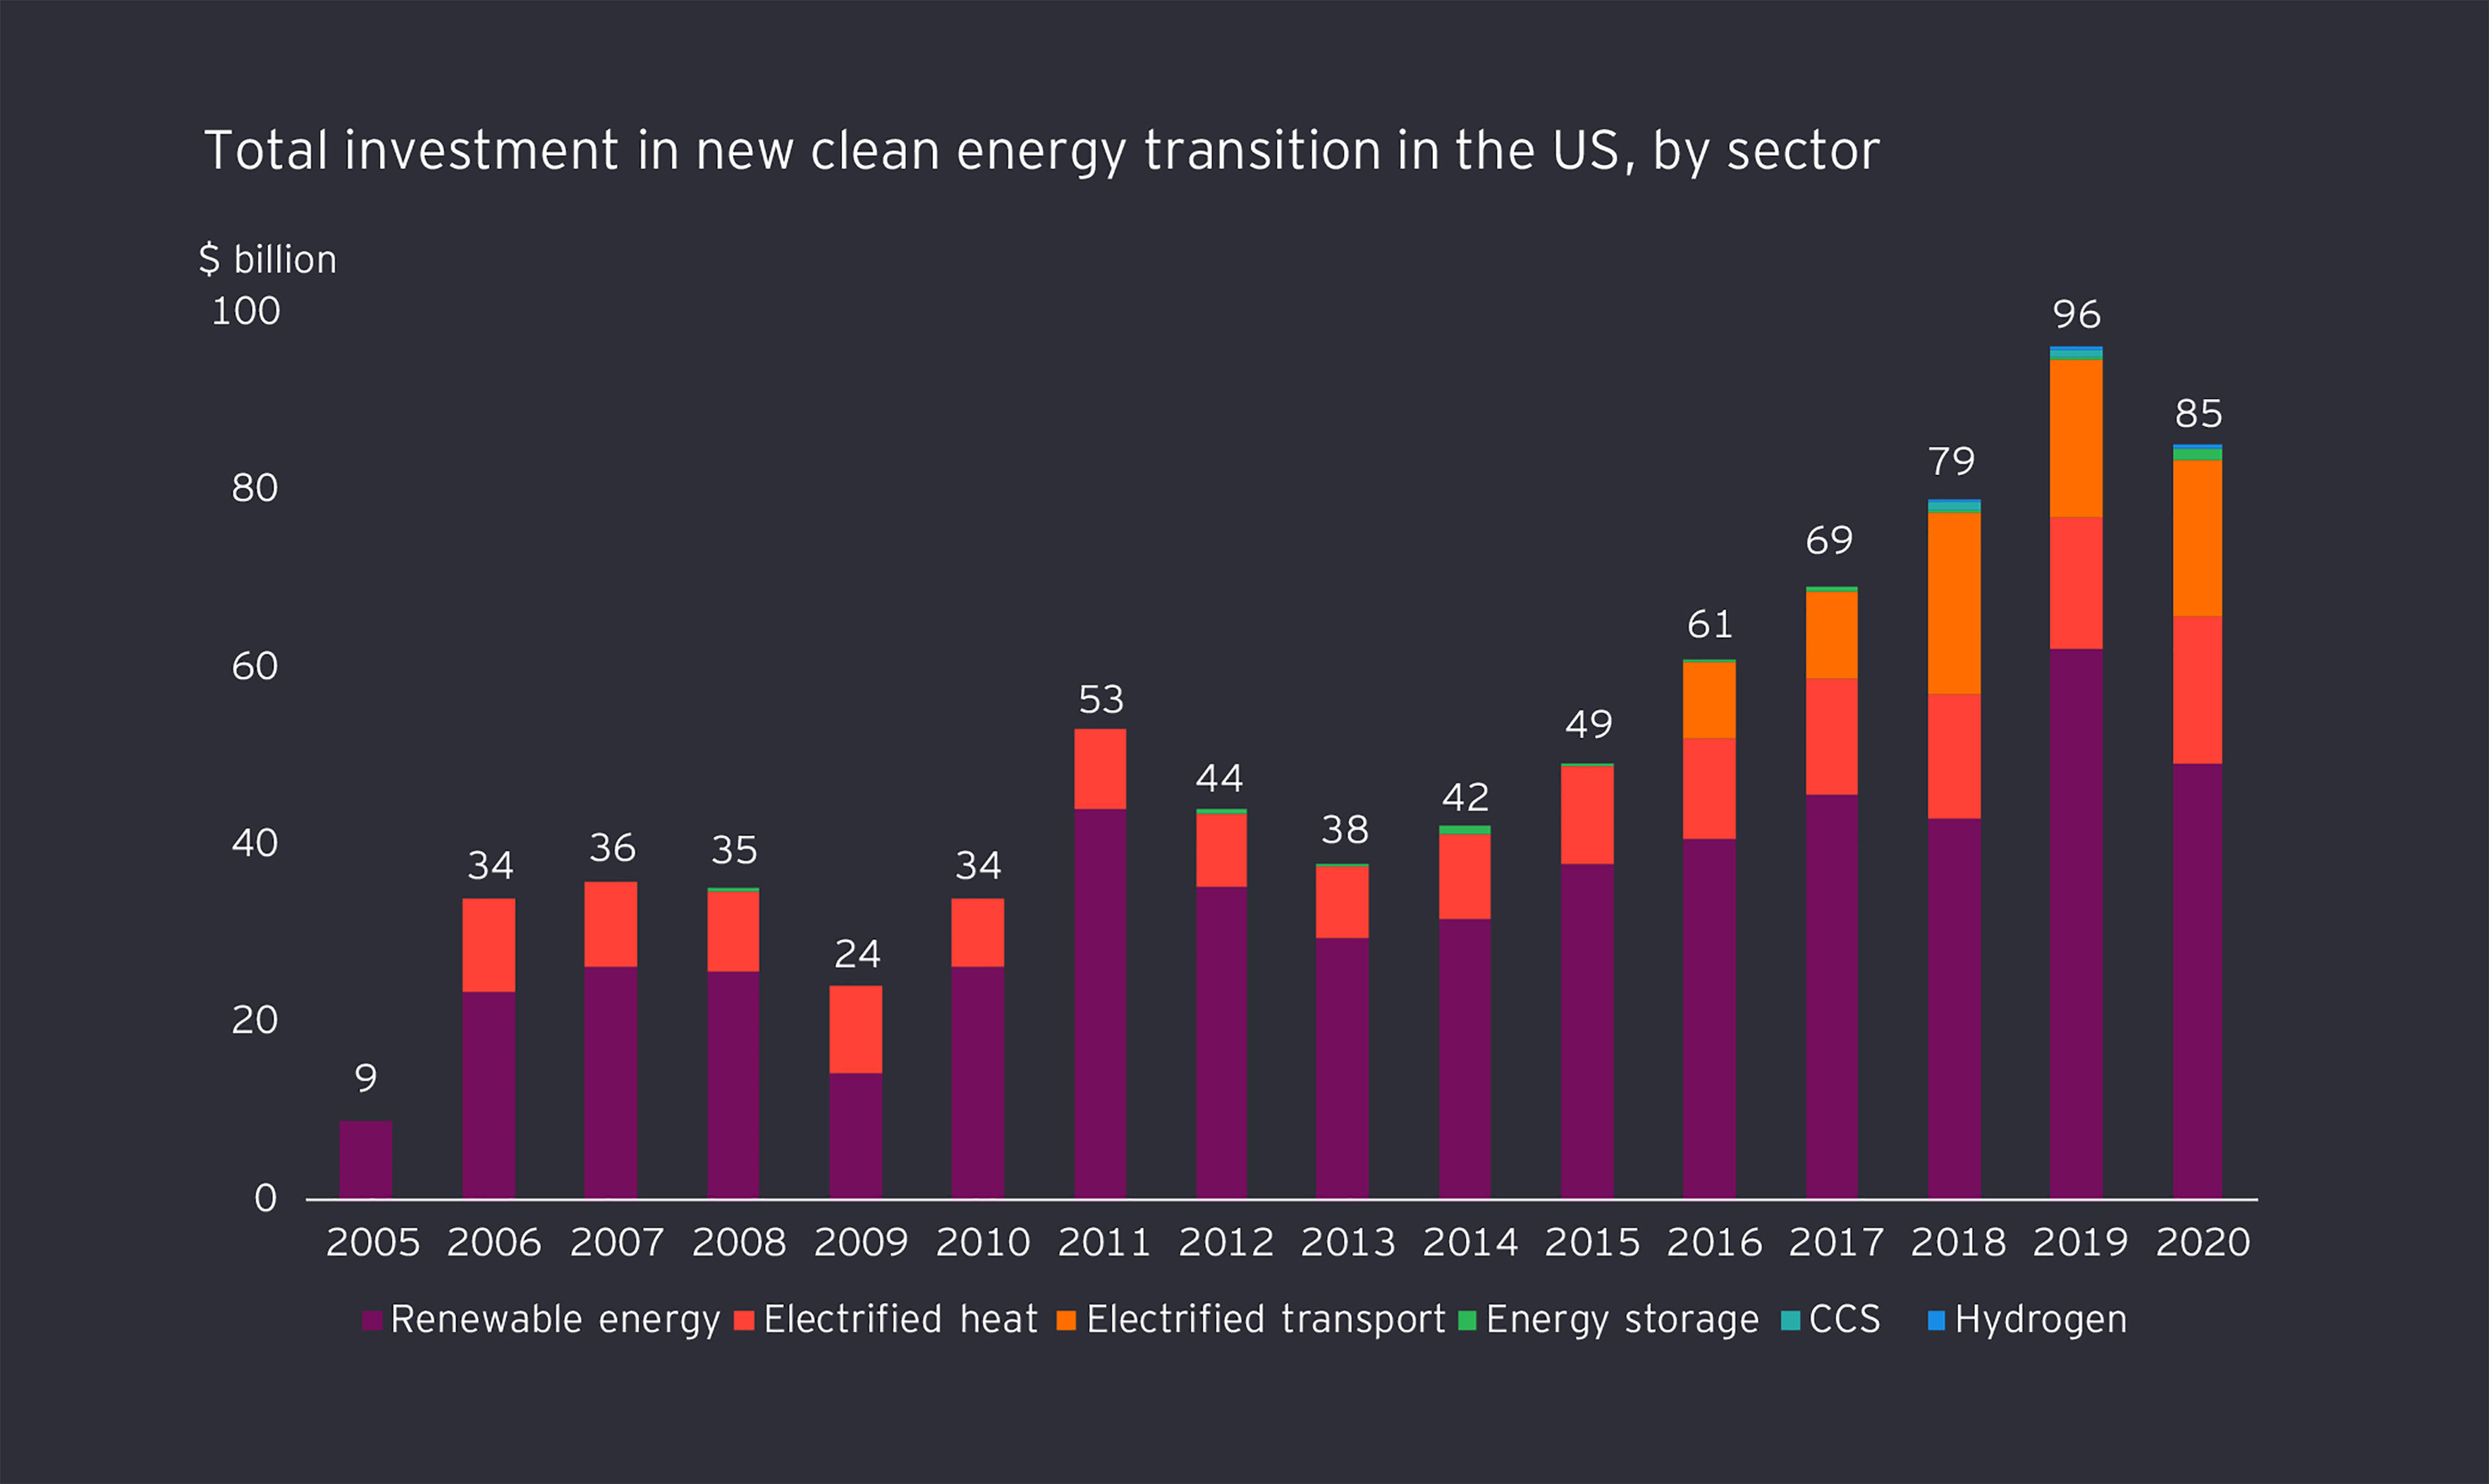 EY - Total investment in new clean energy transition in the US, by sector